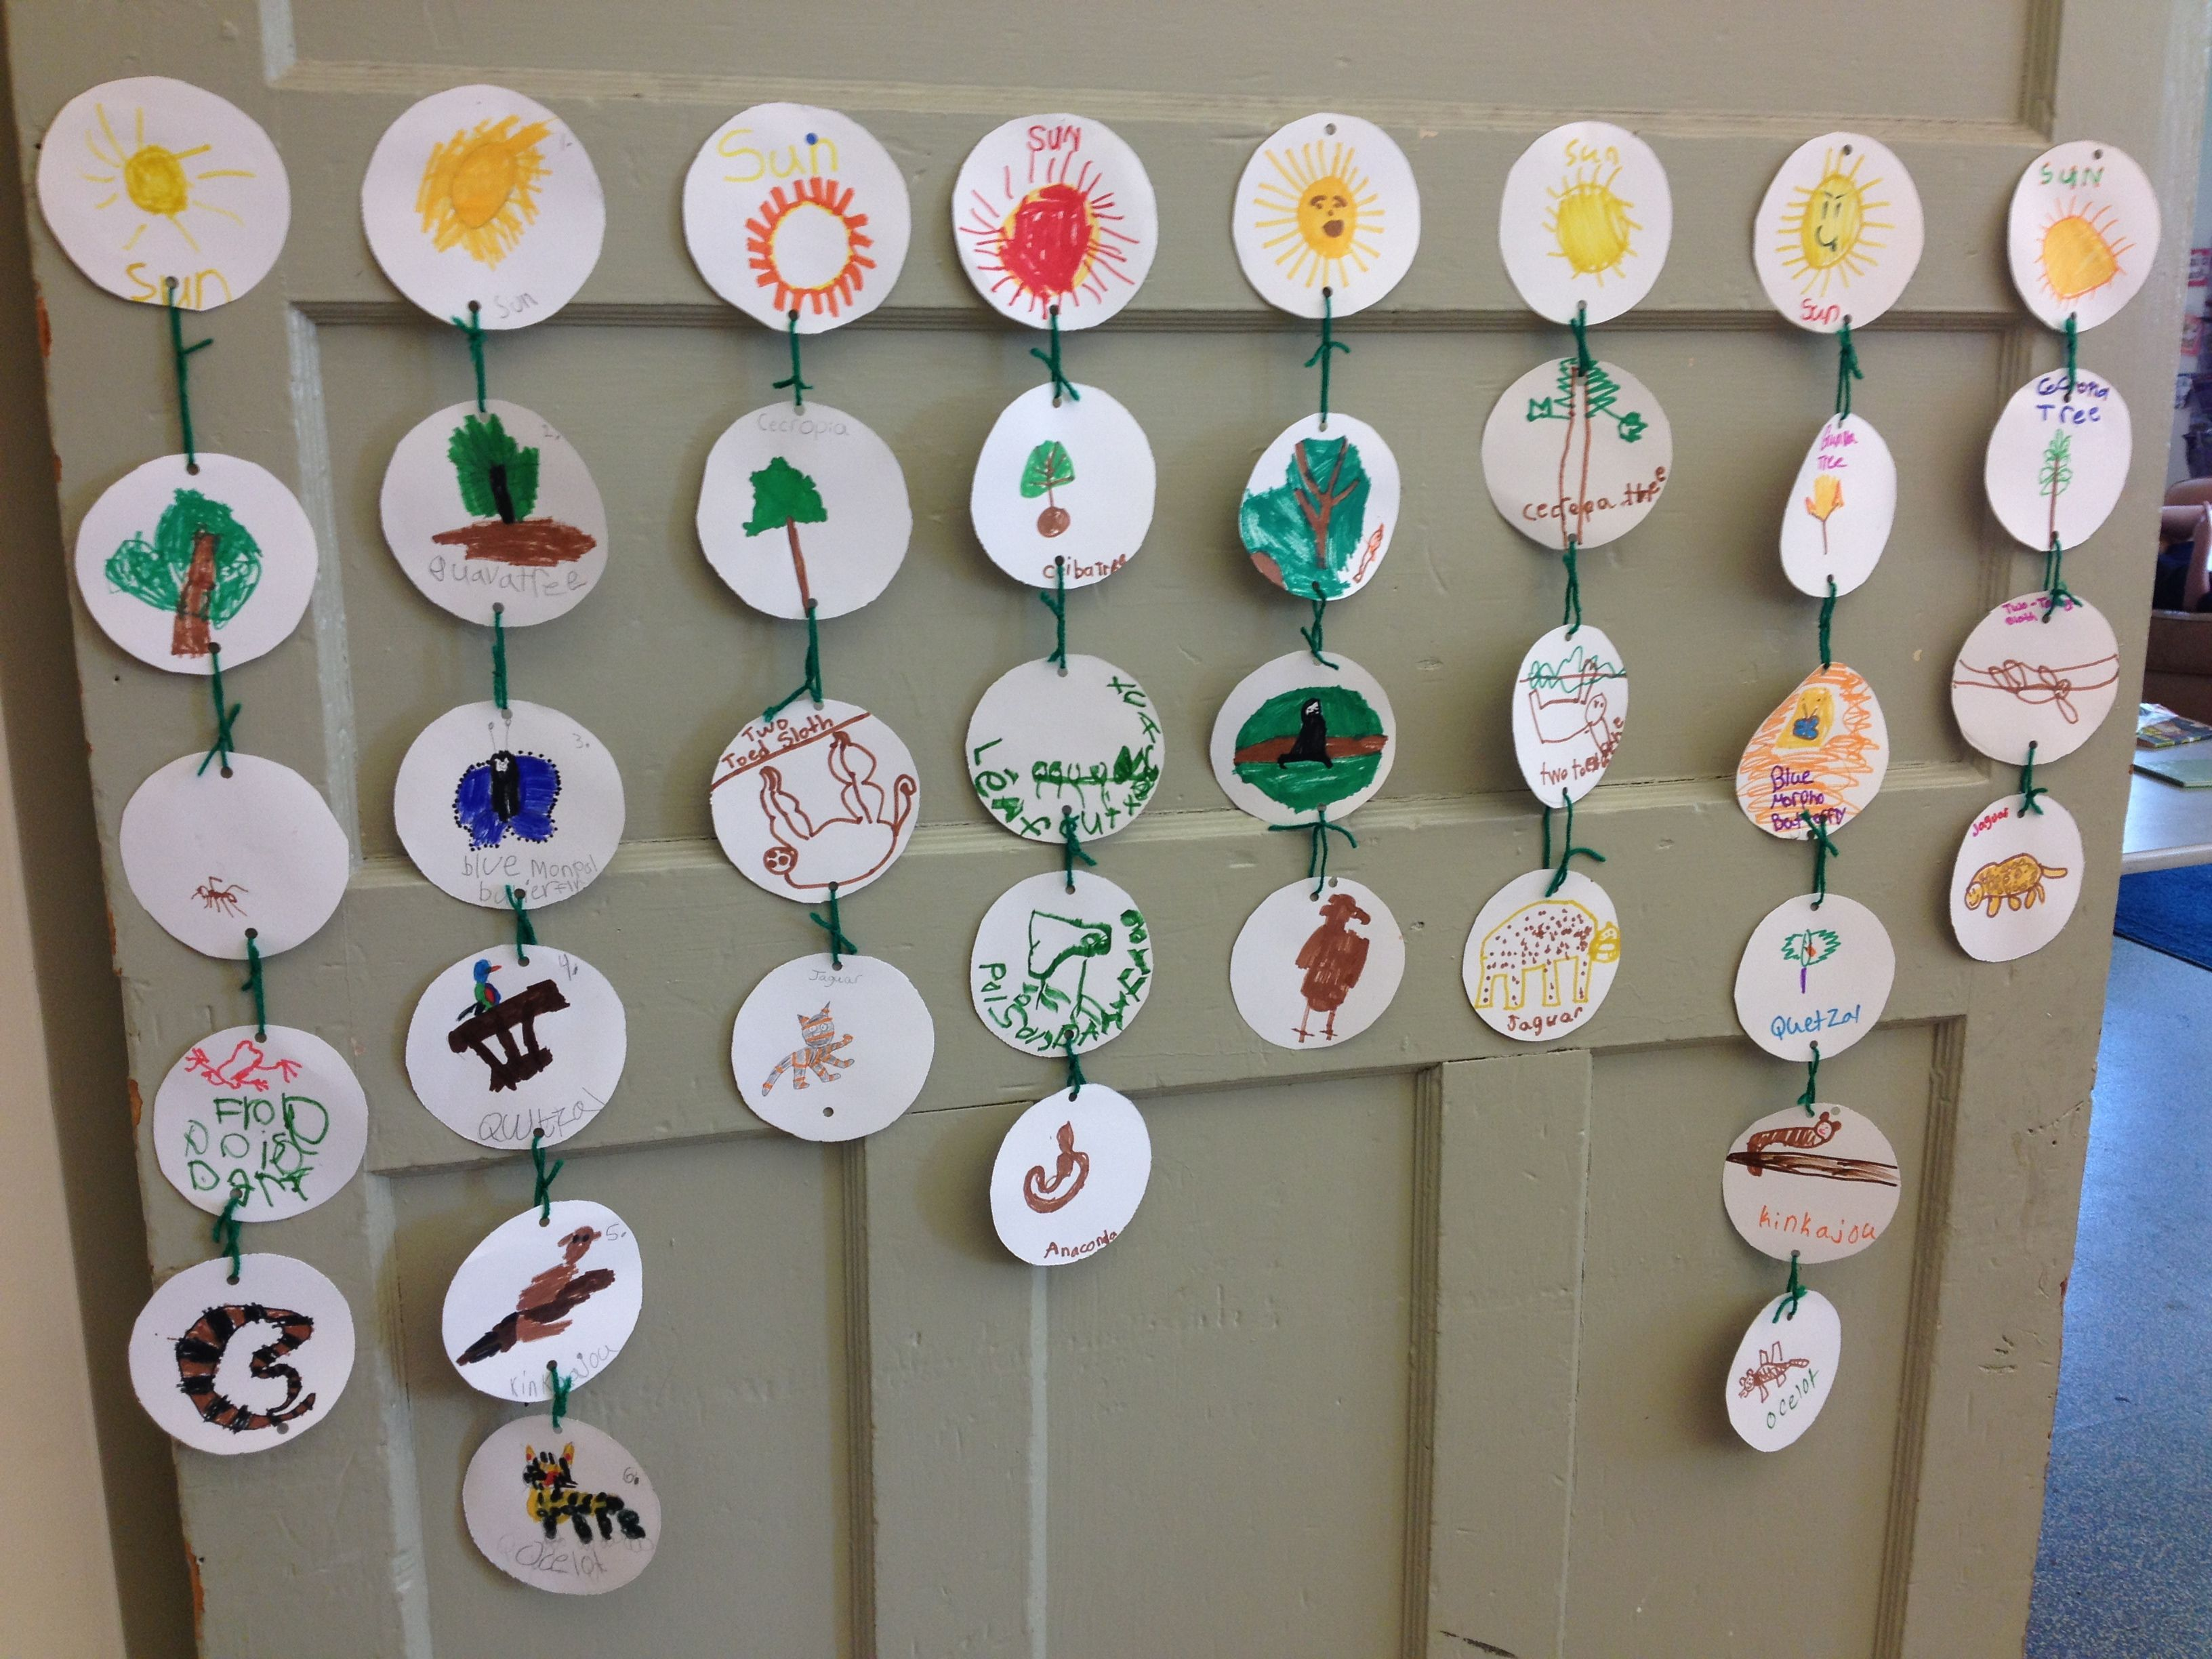 4 Different Food Chains In The Rainforest For Our Rainforest Unit Foodchains Food Chain Activities Rainforest Activities Rainforest Theme [ 2448 x 3264 Pixel ]